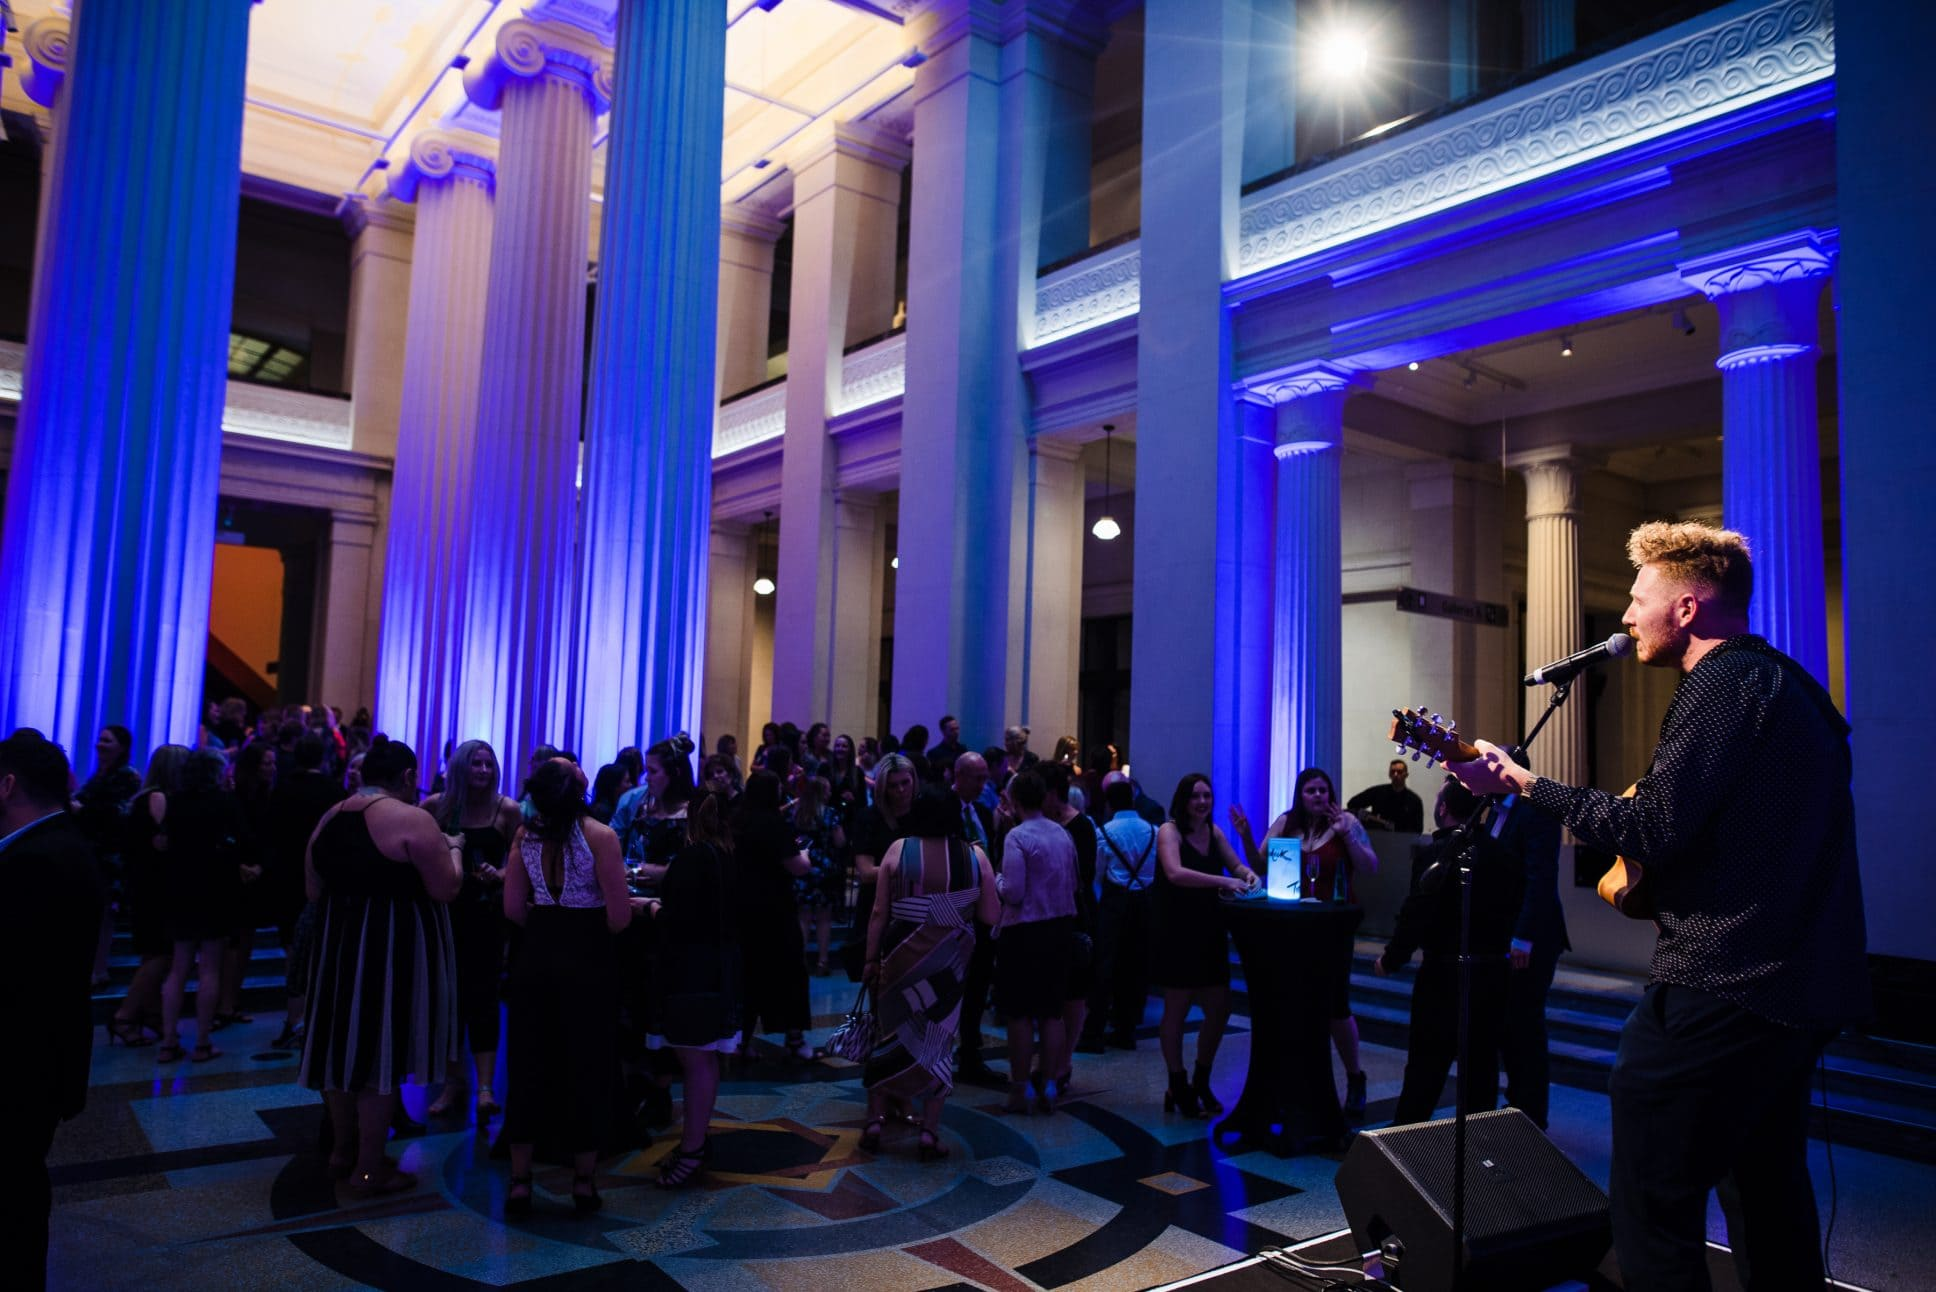 Performance at event in the Grand Foyer at Auckland War Memorial Museum.